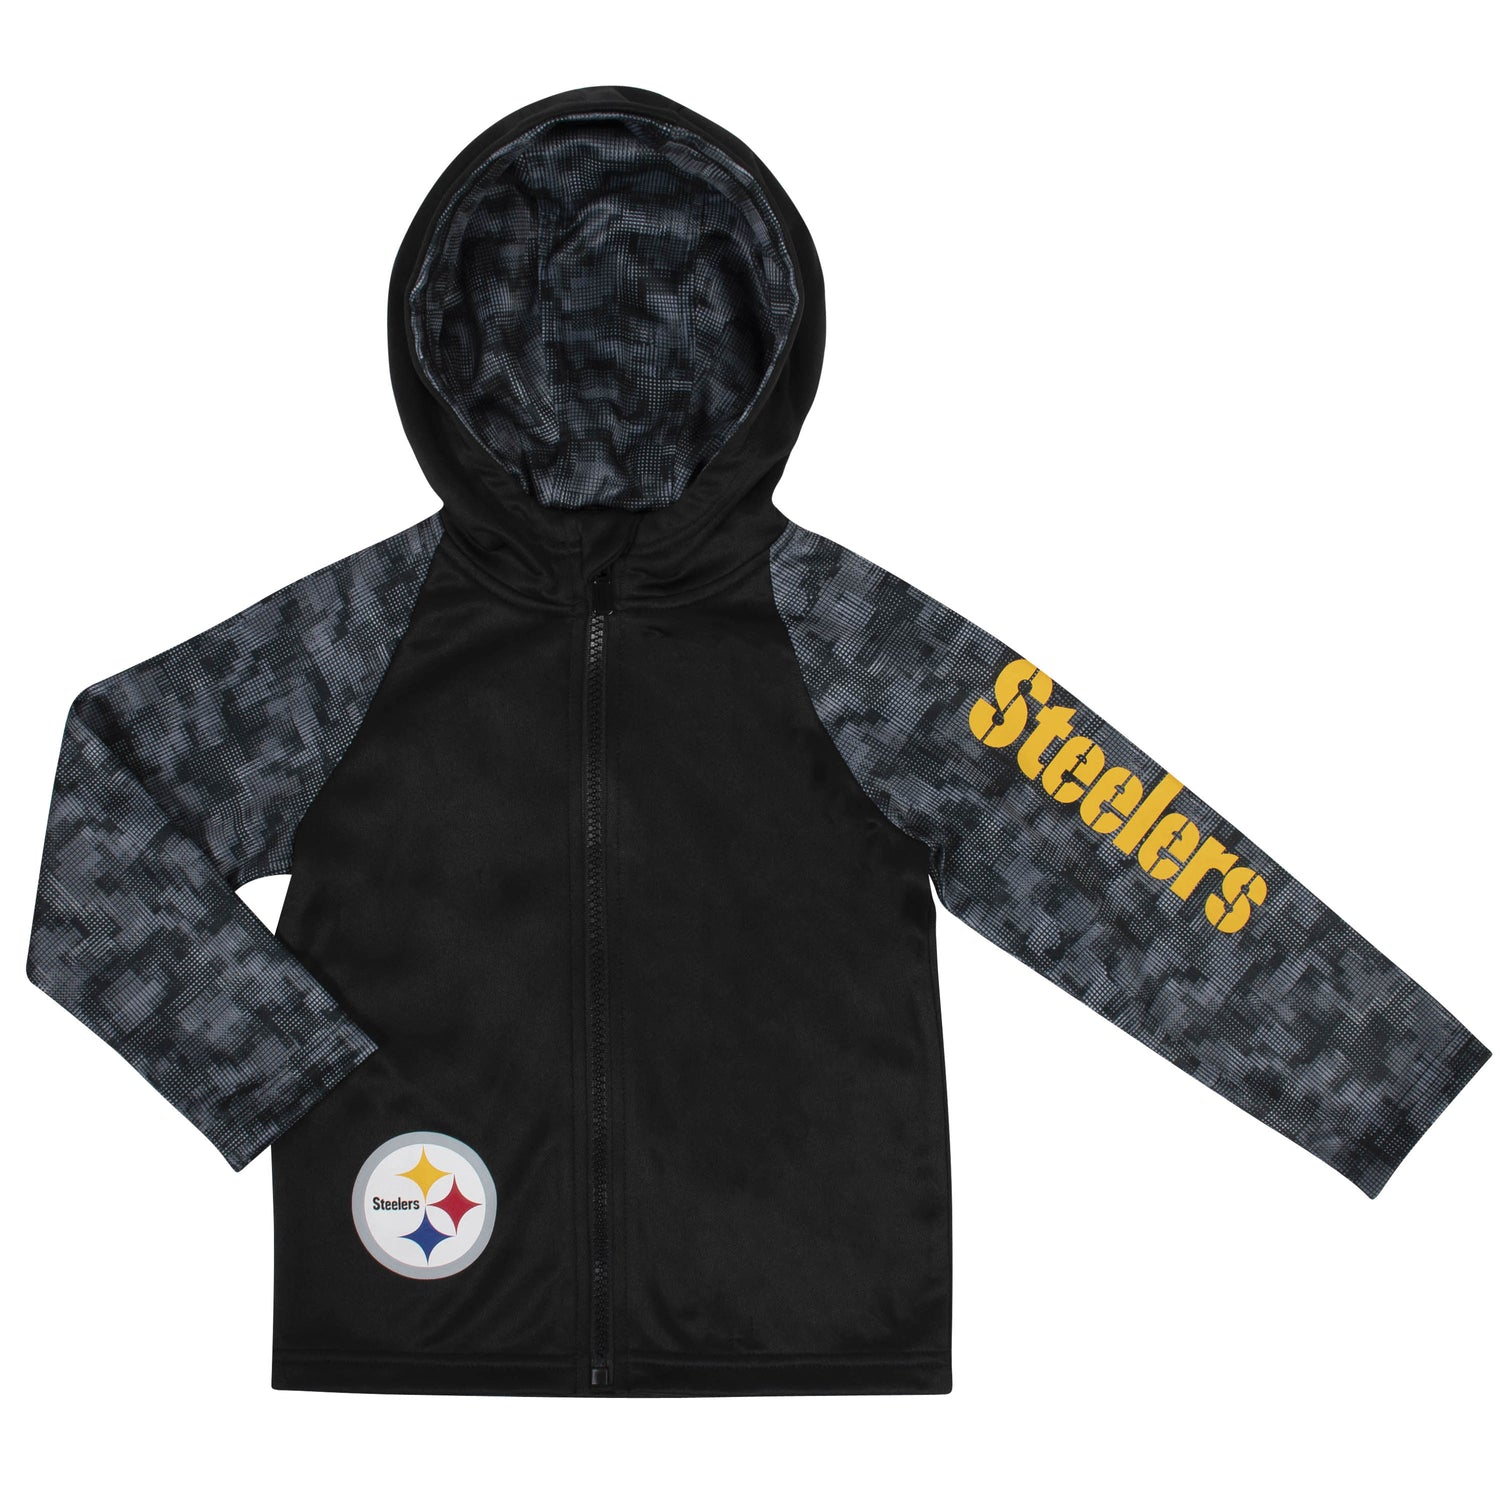 reputable site a7b39 fb365 Toddler Boys Pittsburgh Steelers Hooded Jacket